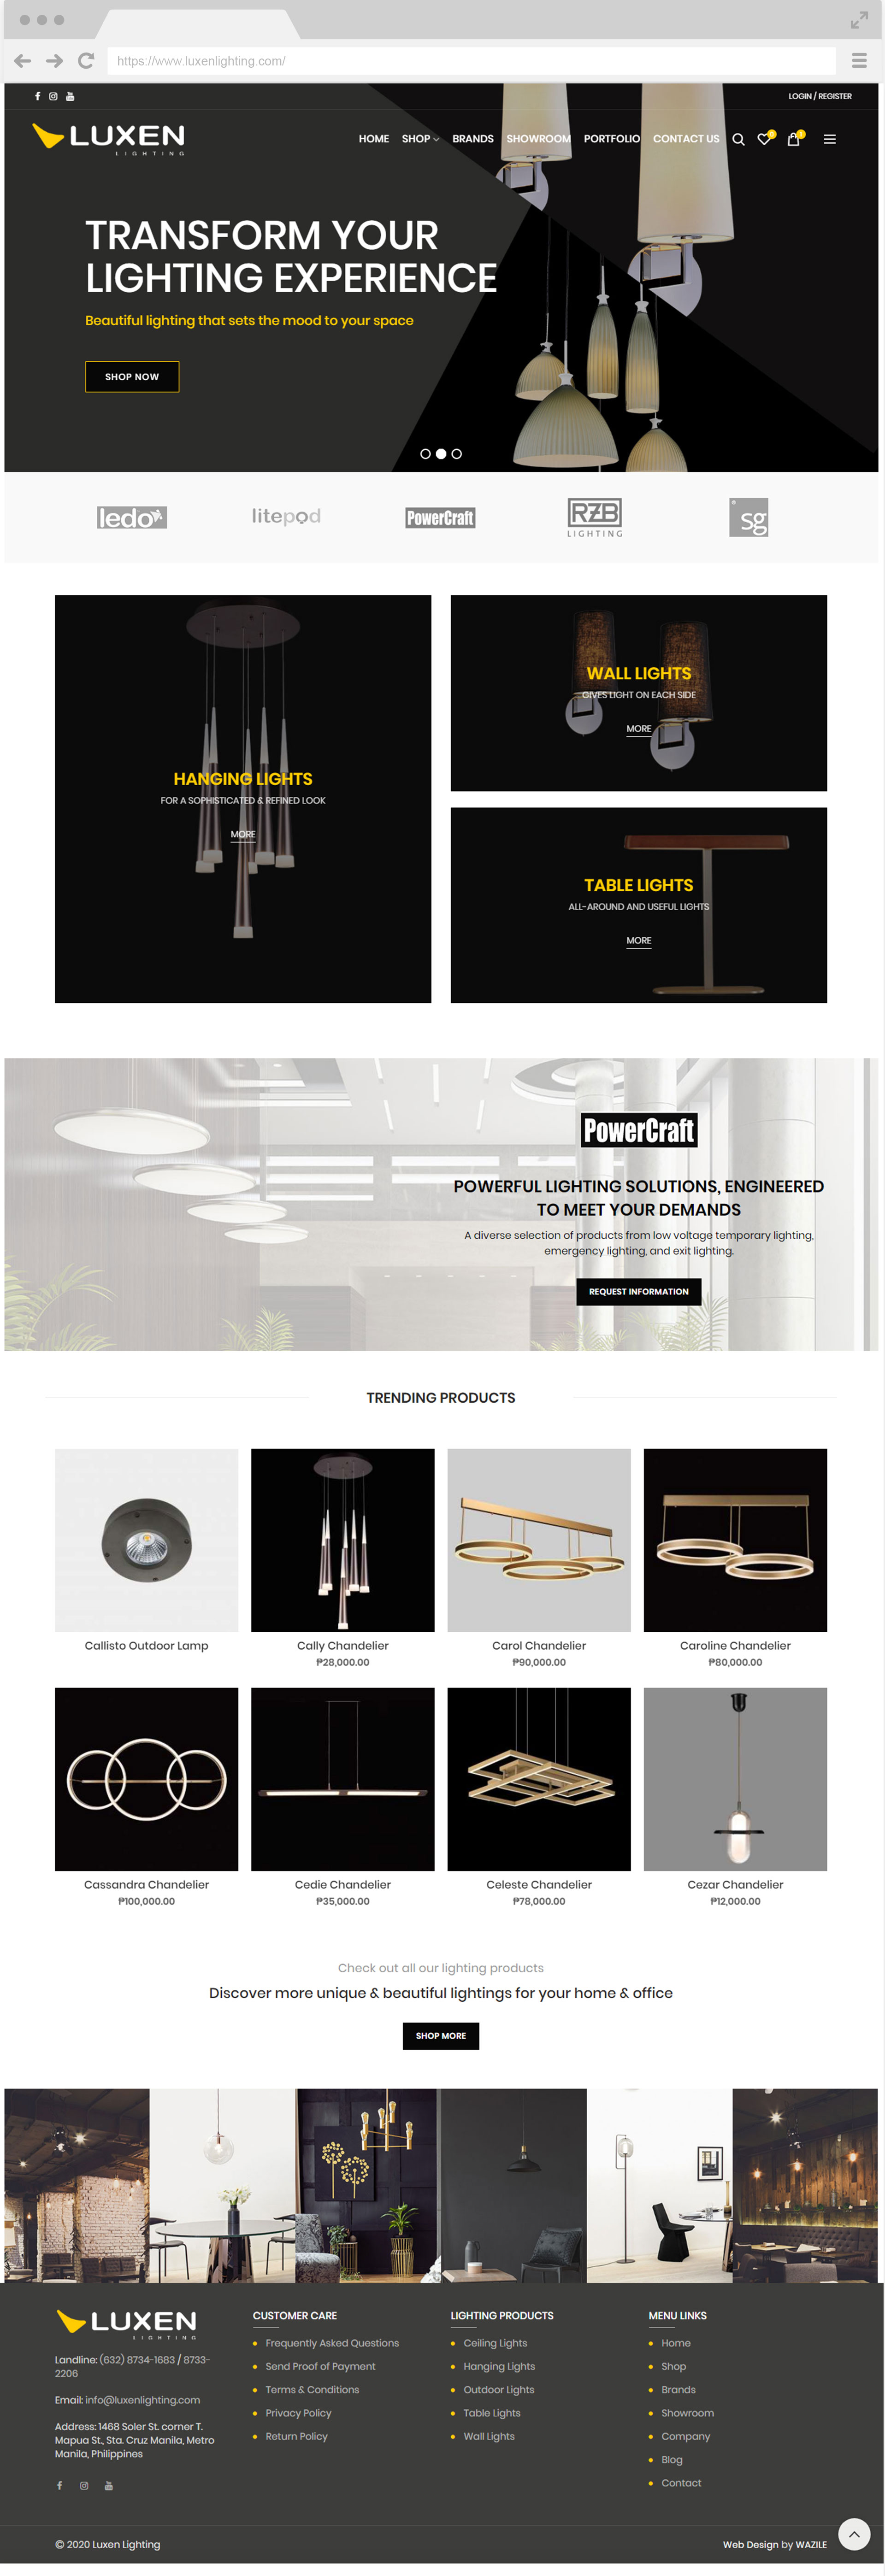 Luxen Lighting Homepage